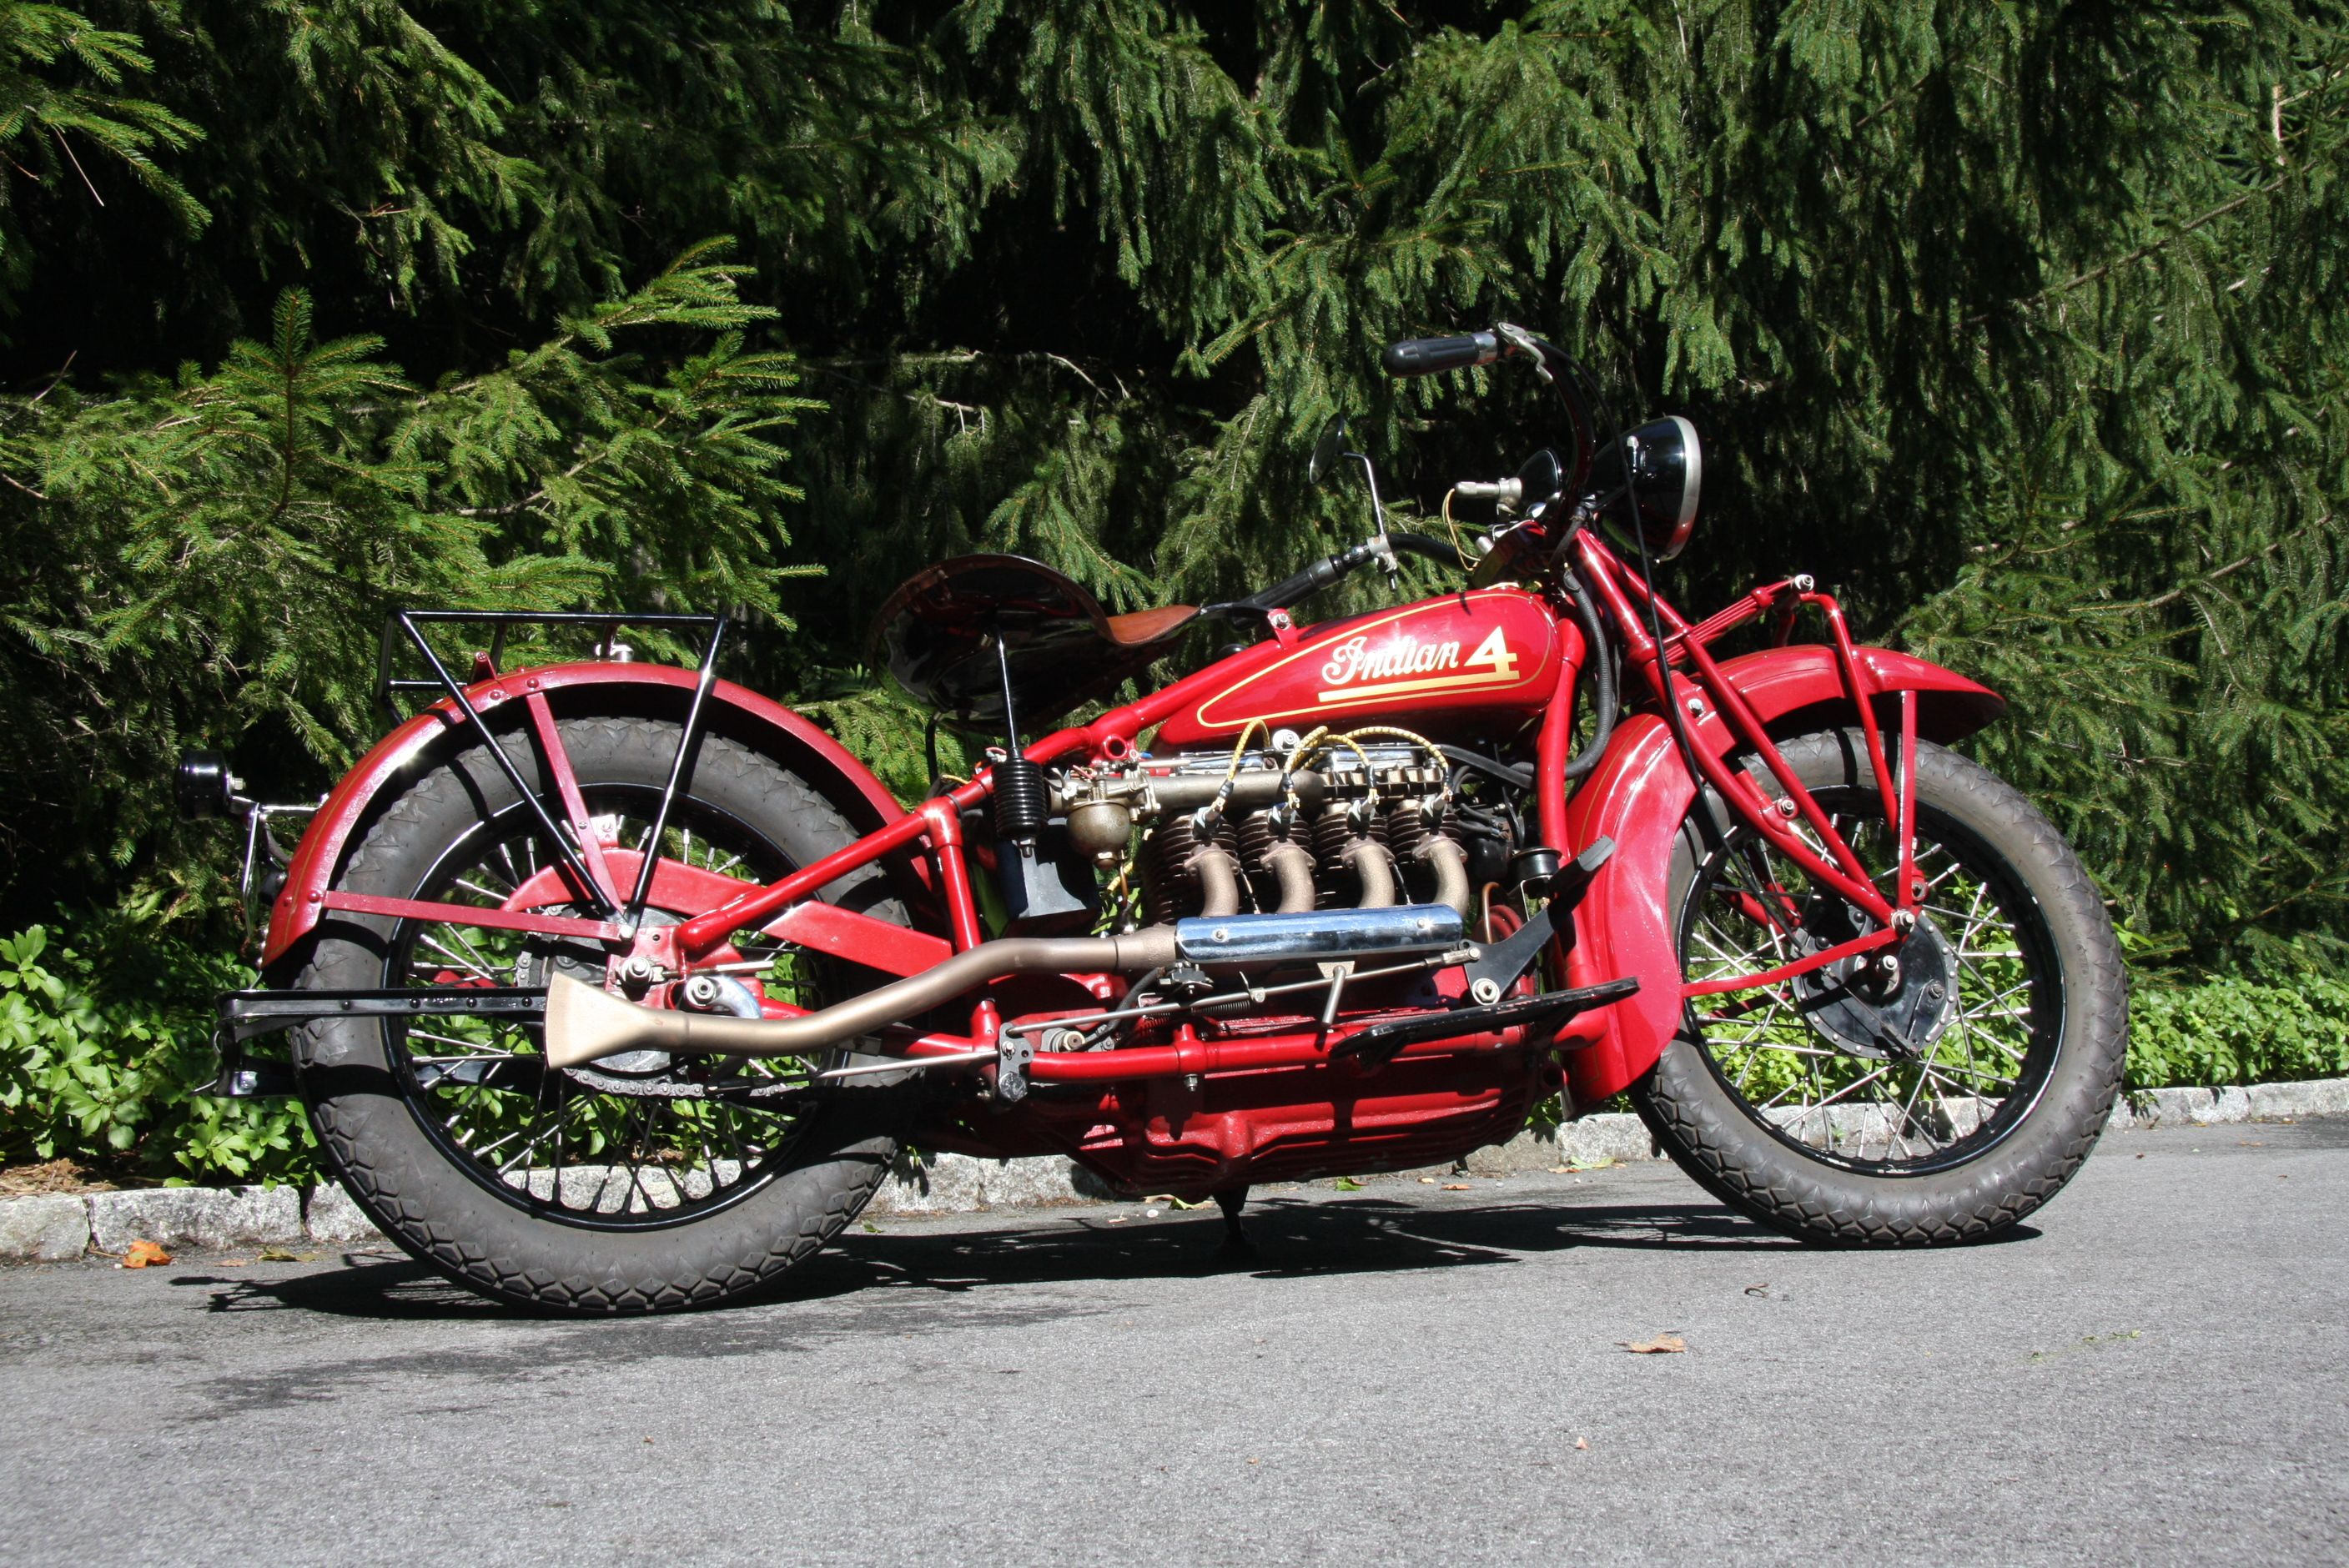 1930 Indian Four Vintage indian motorcycles, Motorcycle